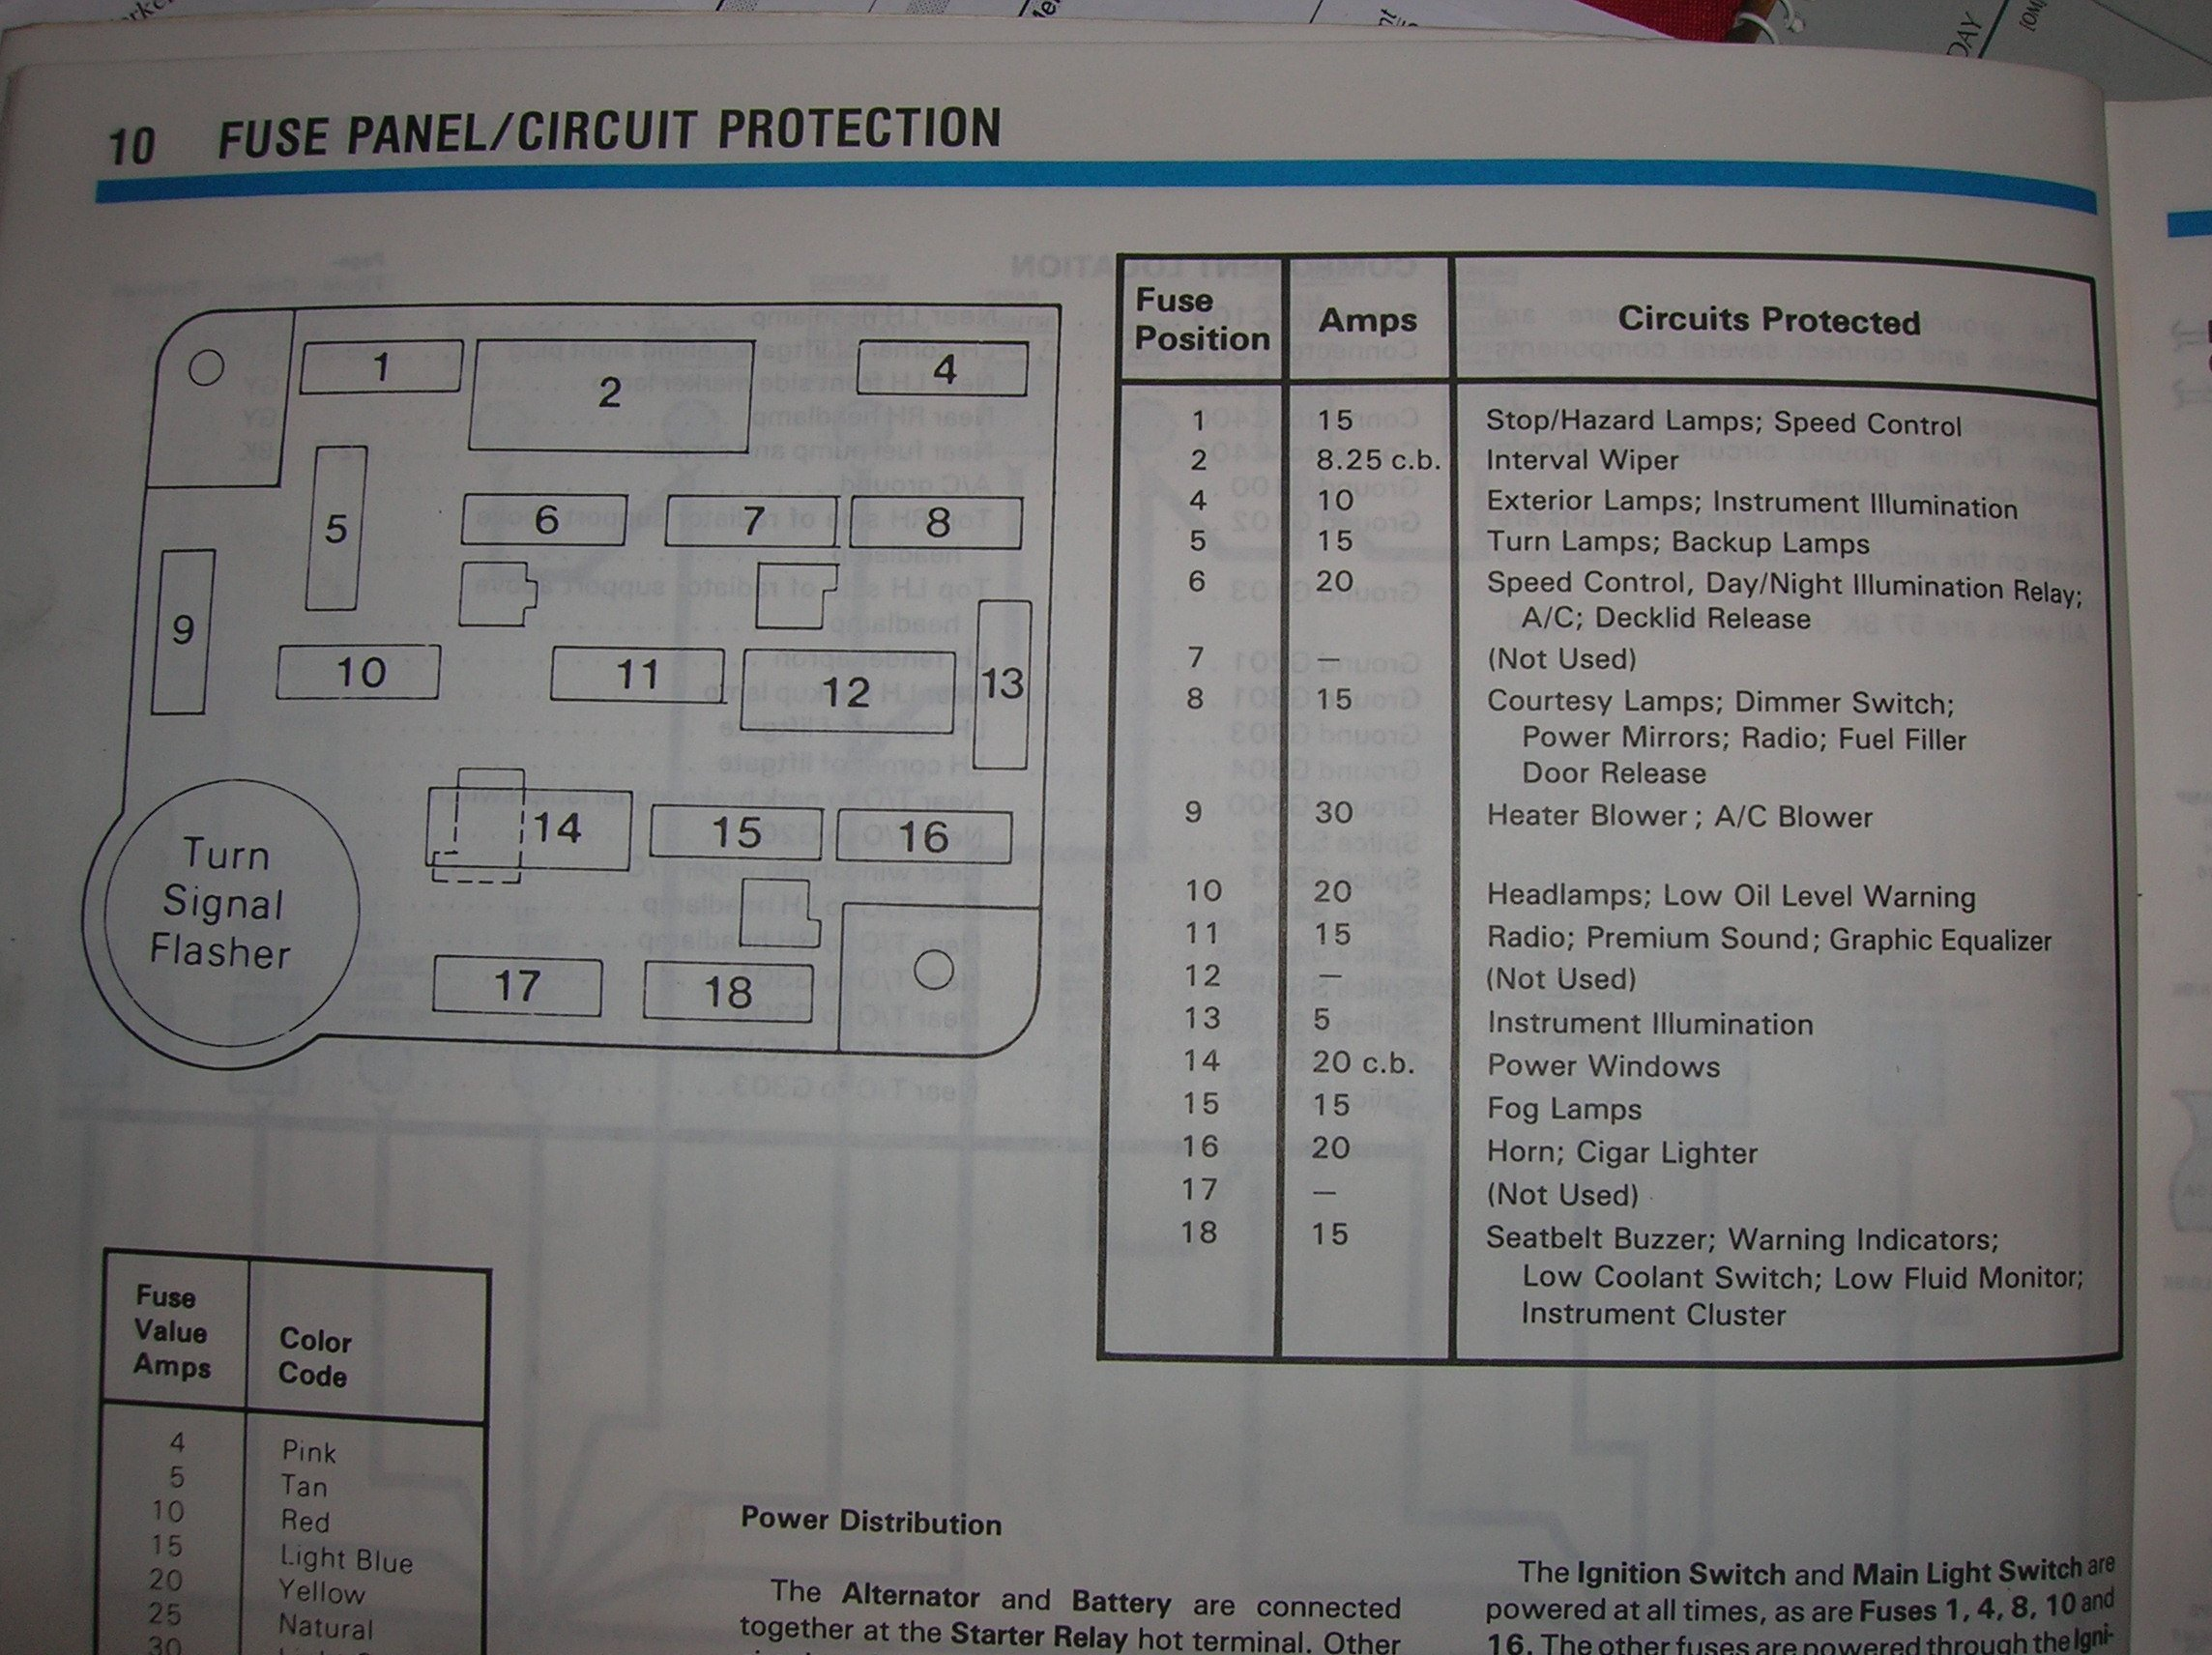 62803d1236060728 fuse panel 1986 mustang 5 0l 87 mustang fuse box pict 93 mustang fuse box 93 mustang fuse box diagram \u2022 wiring diagrams 1993 ford mustang fuse box diagram at creativeand.co